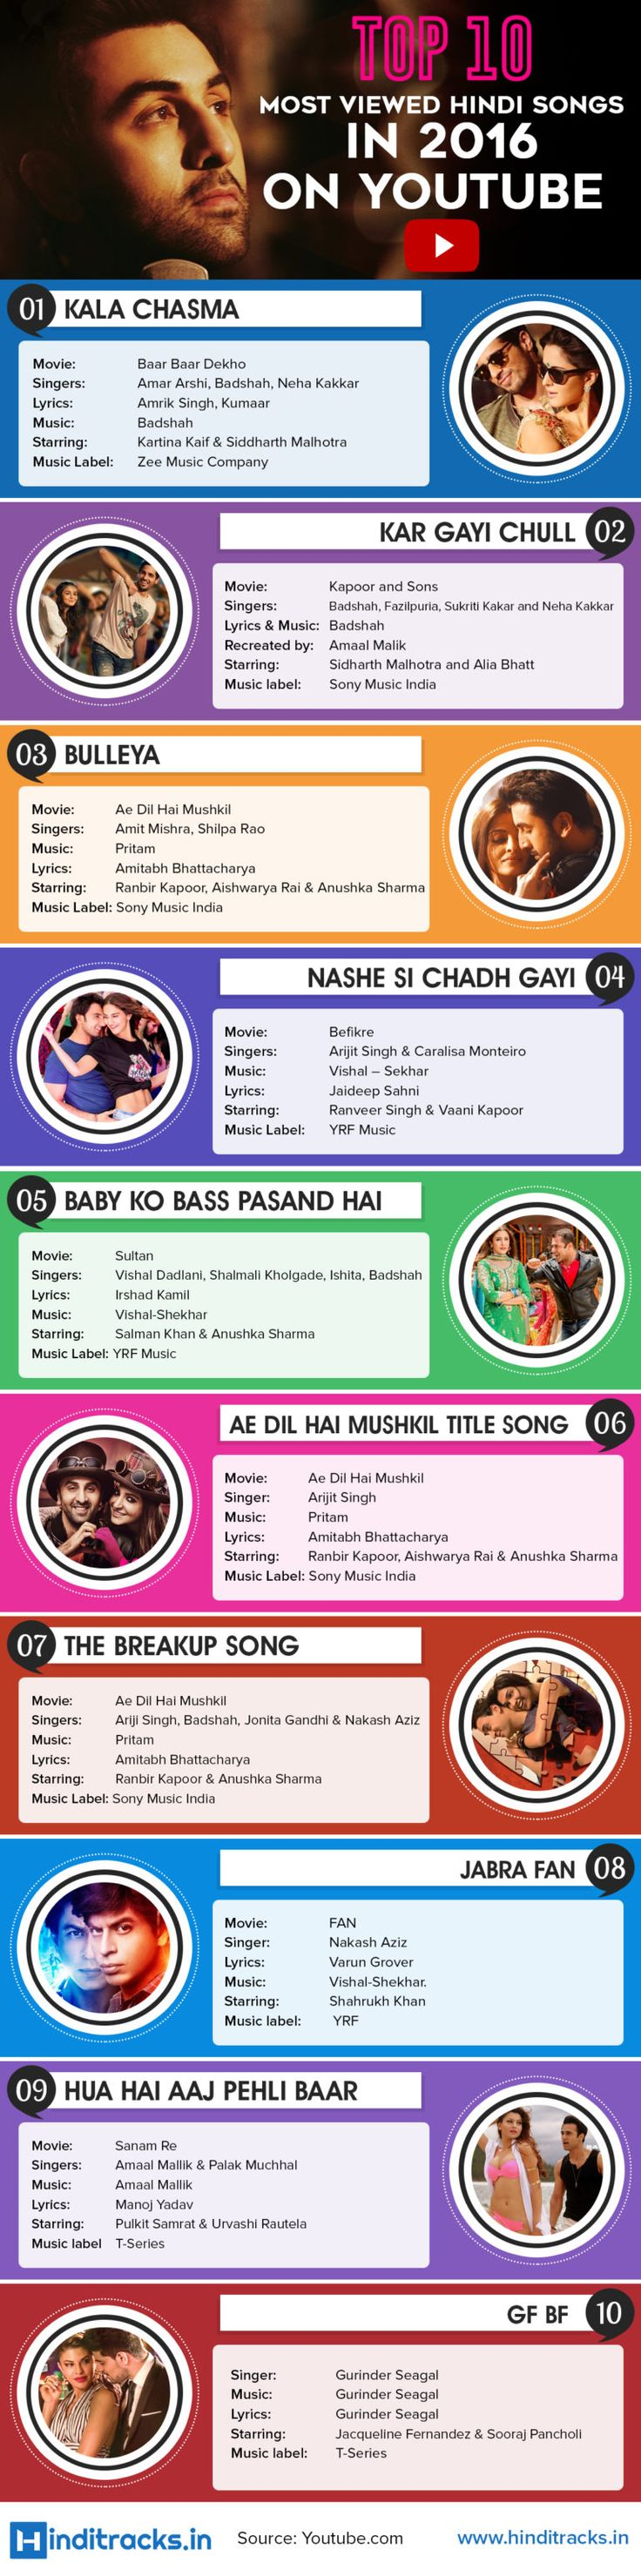 Top 10 most viewed Hindi Songs in year 2016 on #Youtube  #HindiSongLyrics #BollywoodSongs #HitBollywoodSongs